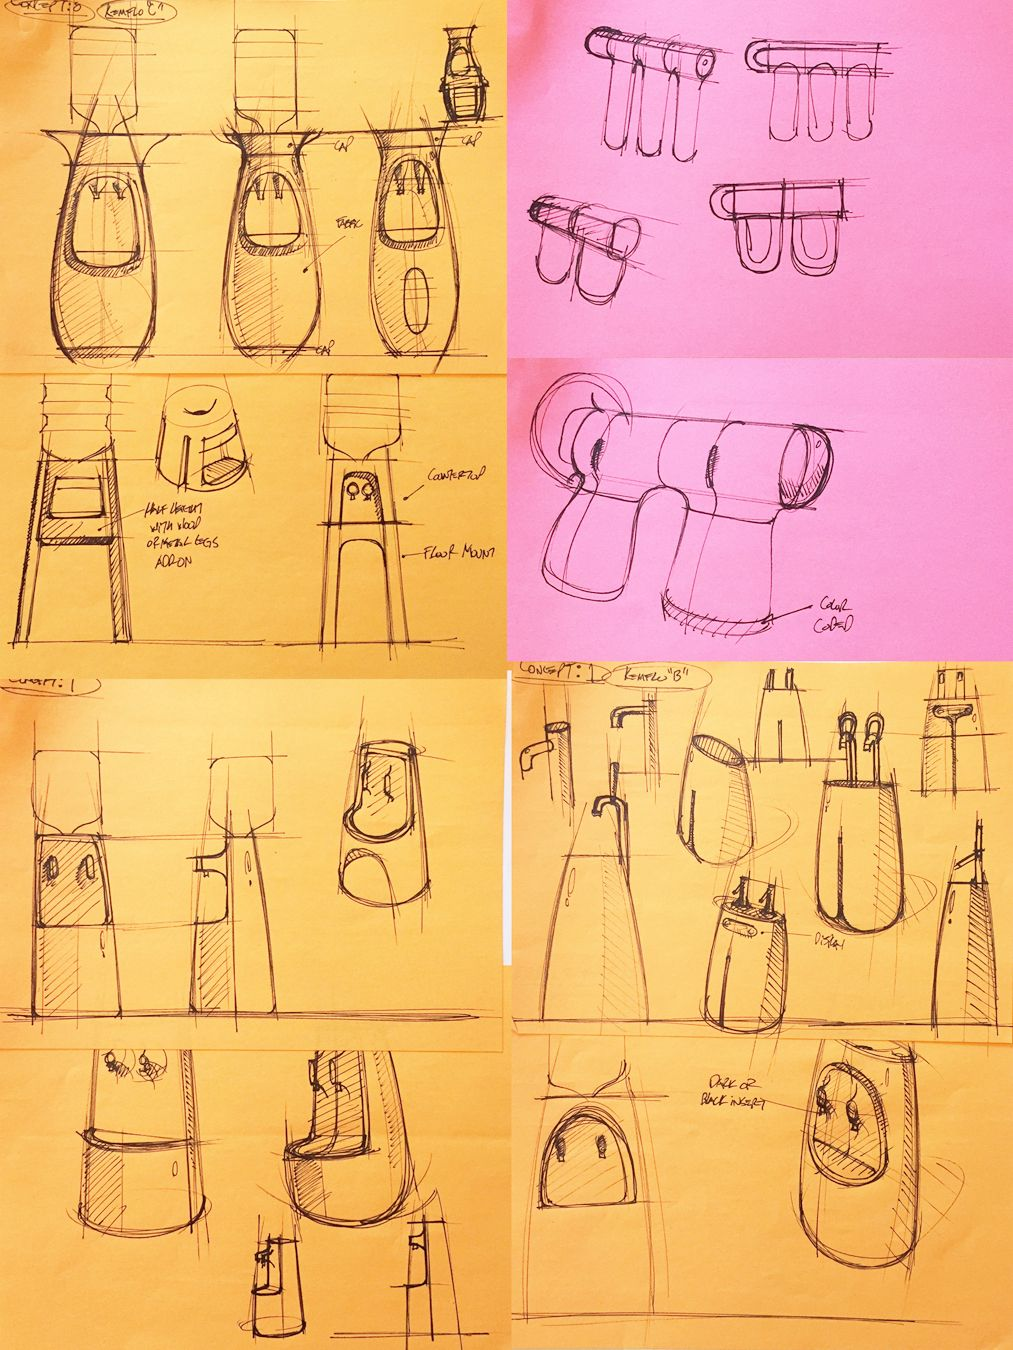 Process Insight Thumbnail Sketches For Kemflo Water Filtration Visual Brand Language James Owen Design Kemflo Design I Sketches Male Sketch Design